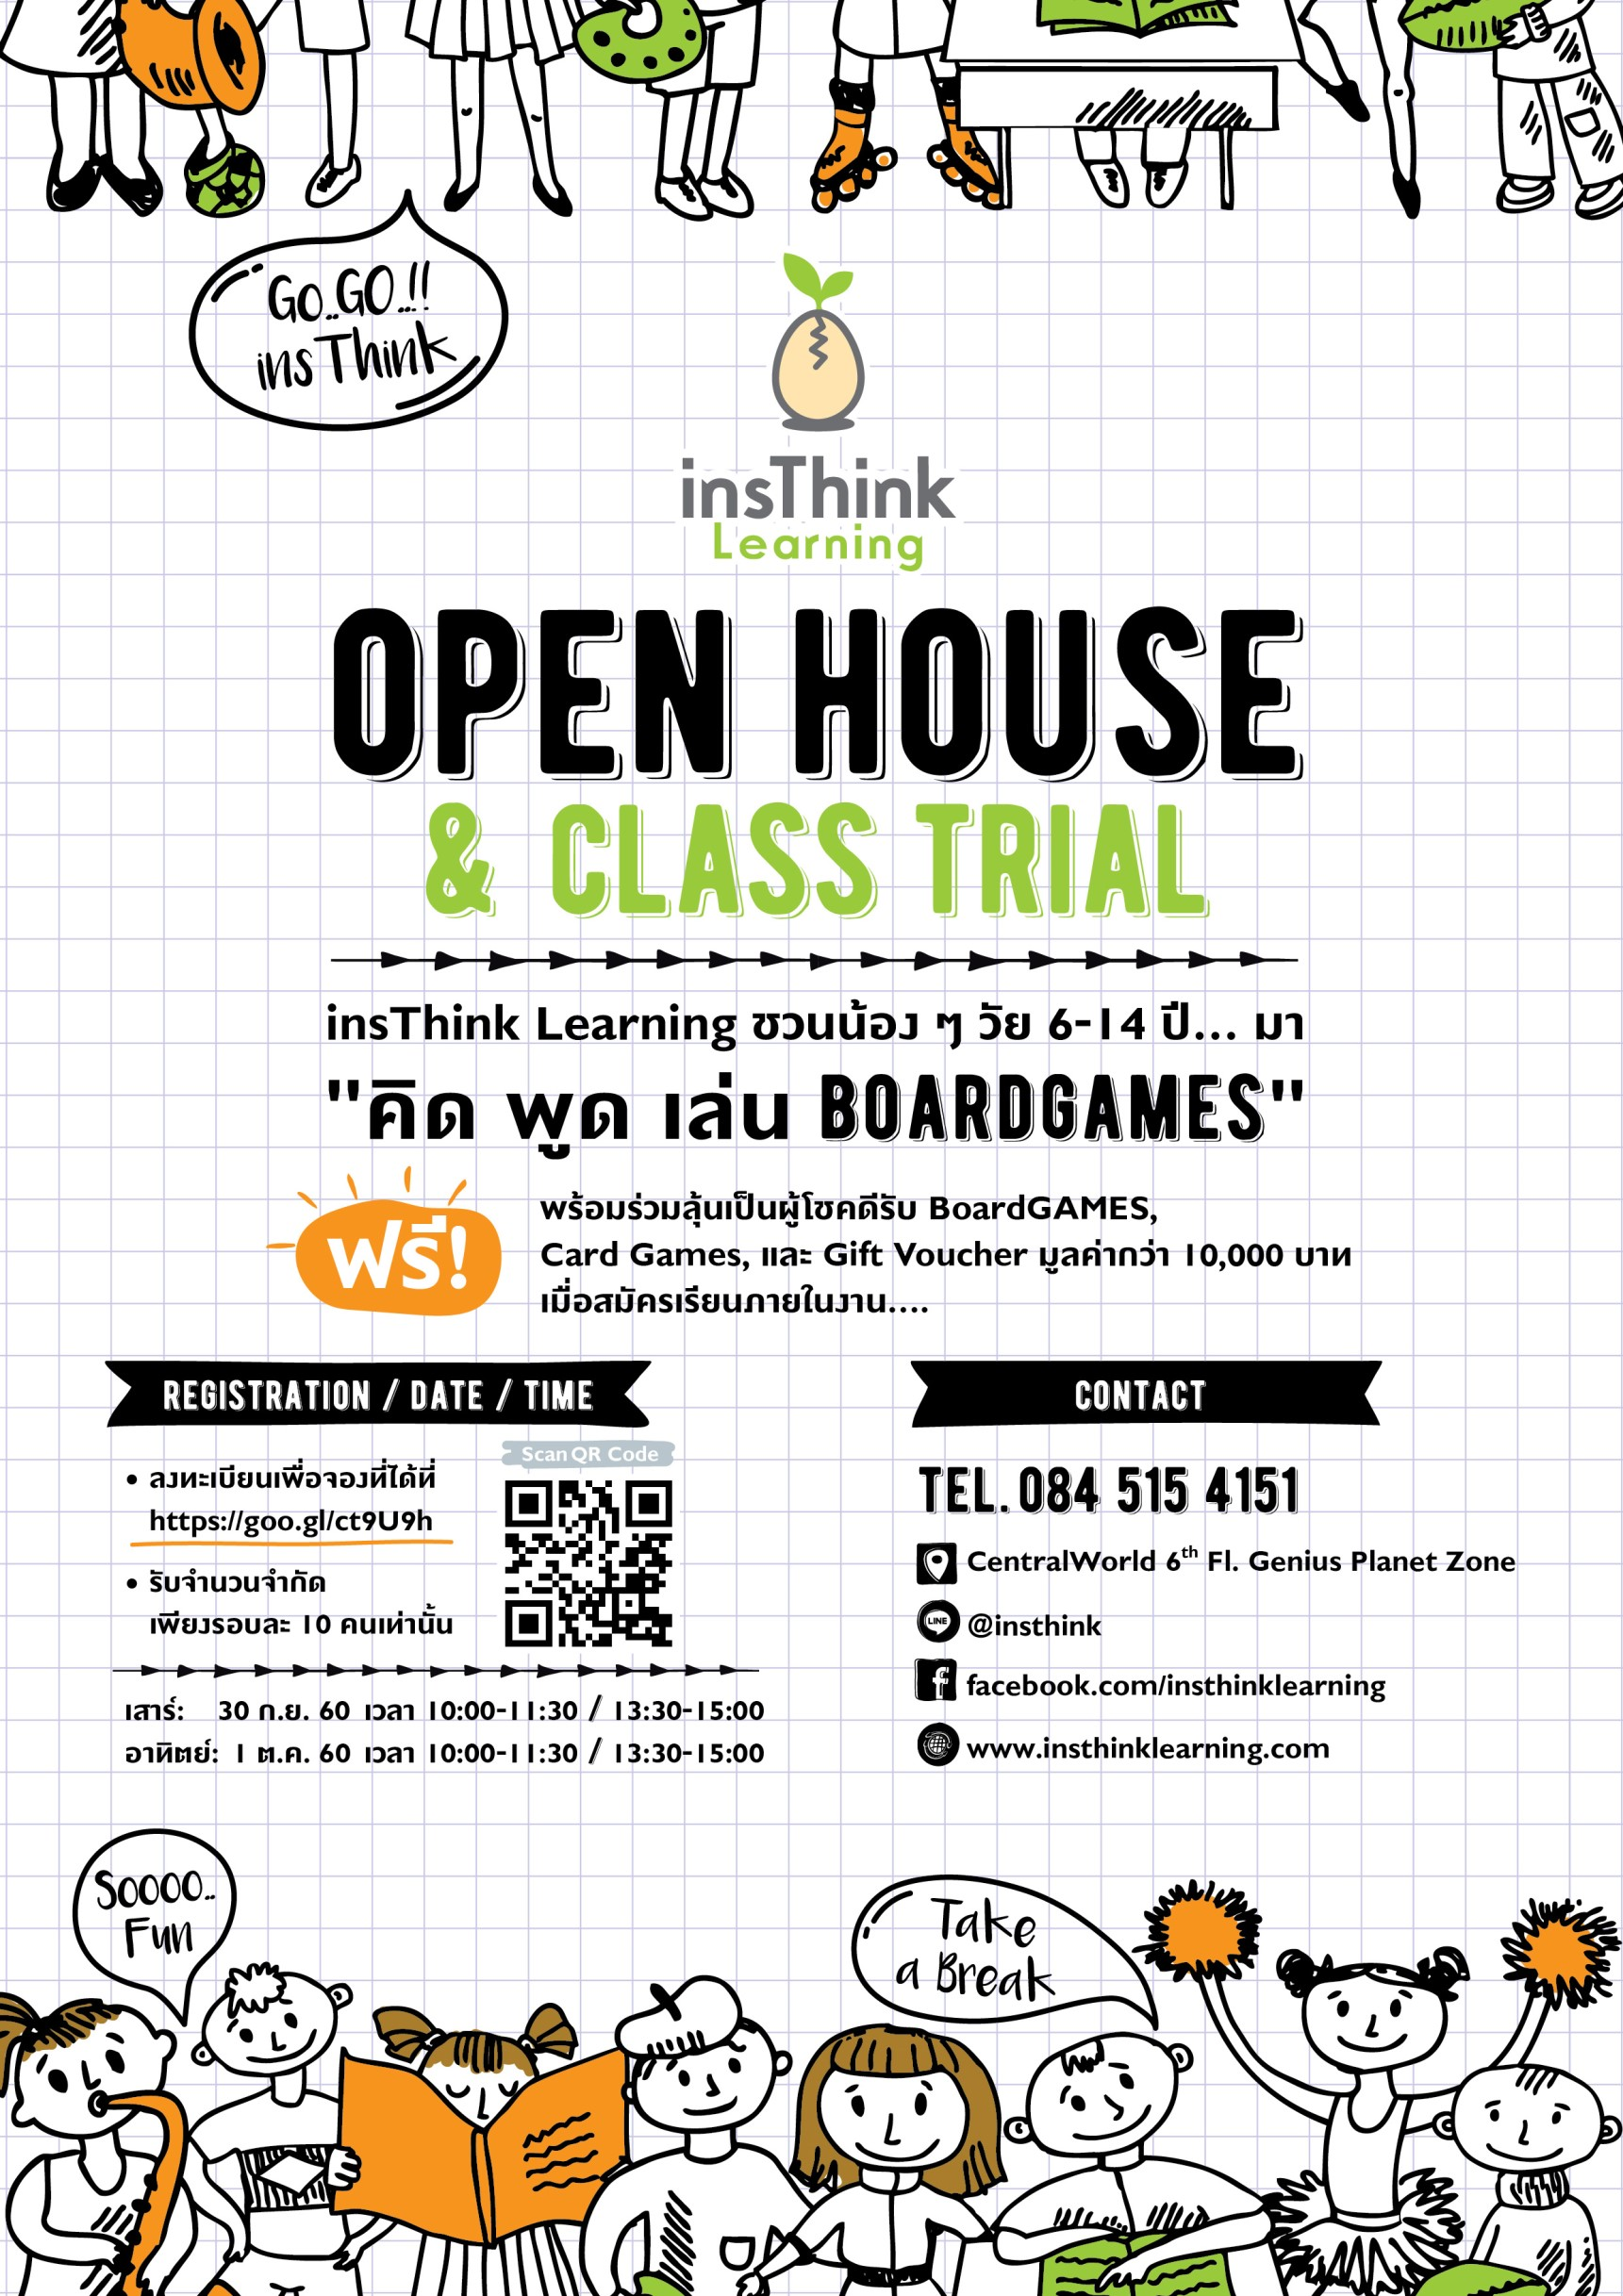 insThink Learning Open House & Class Trial Event on September 30 - October 1, 2017